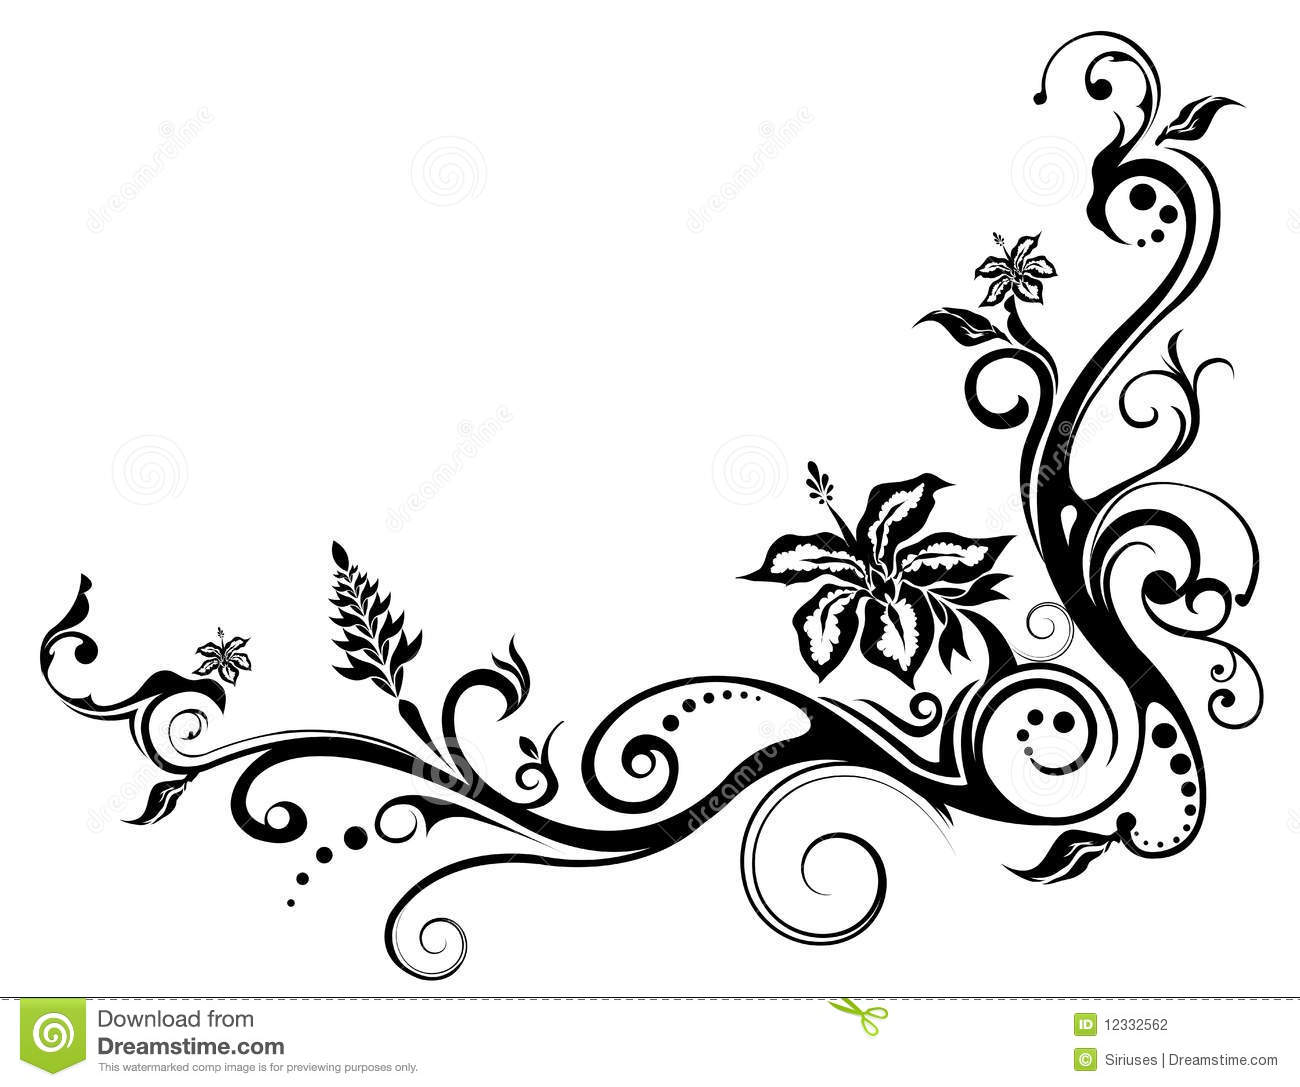 Vine Designs Art : Flower and vines pattern stock illustration